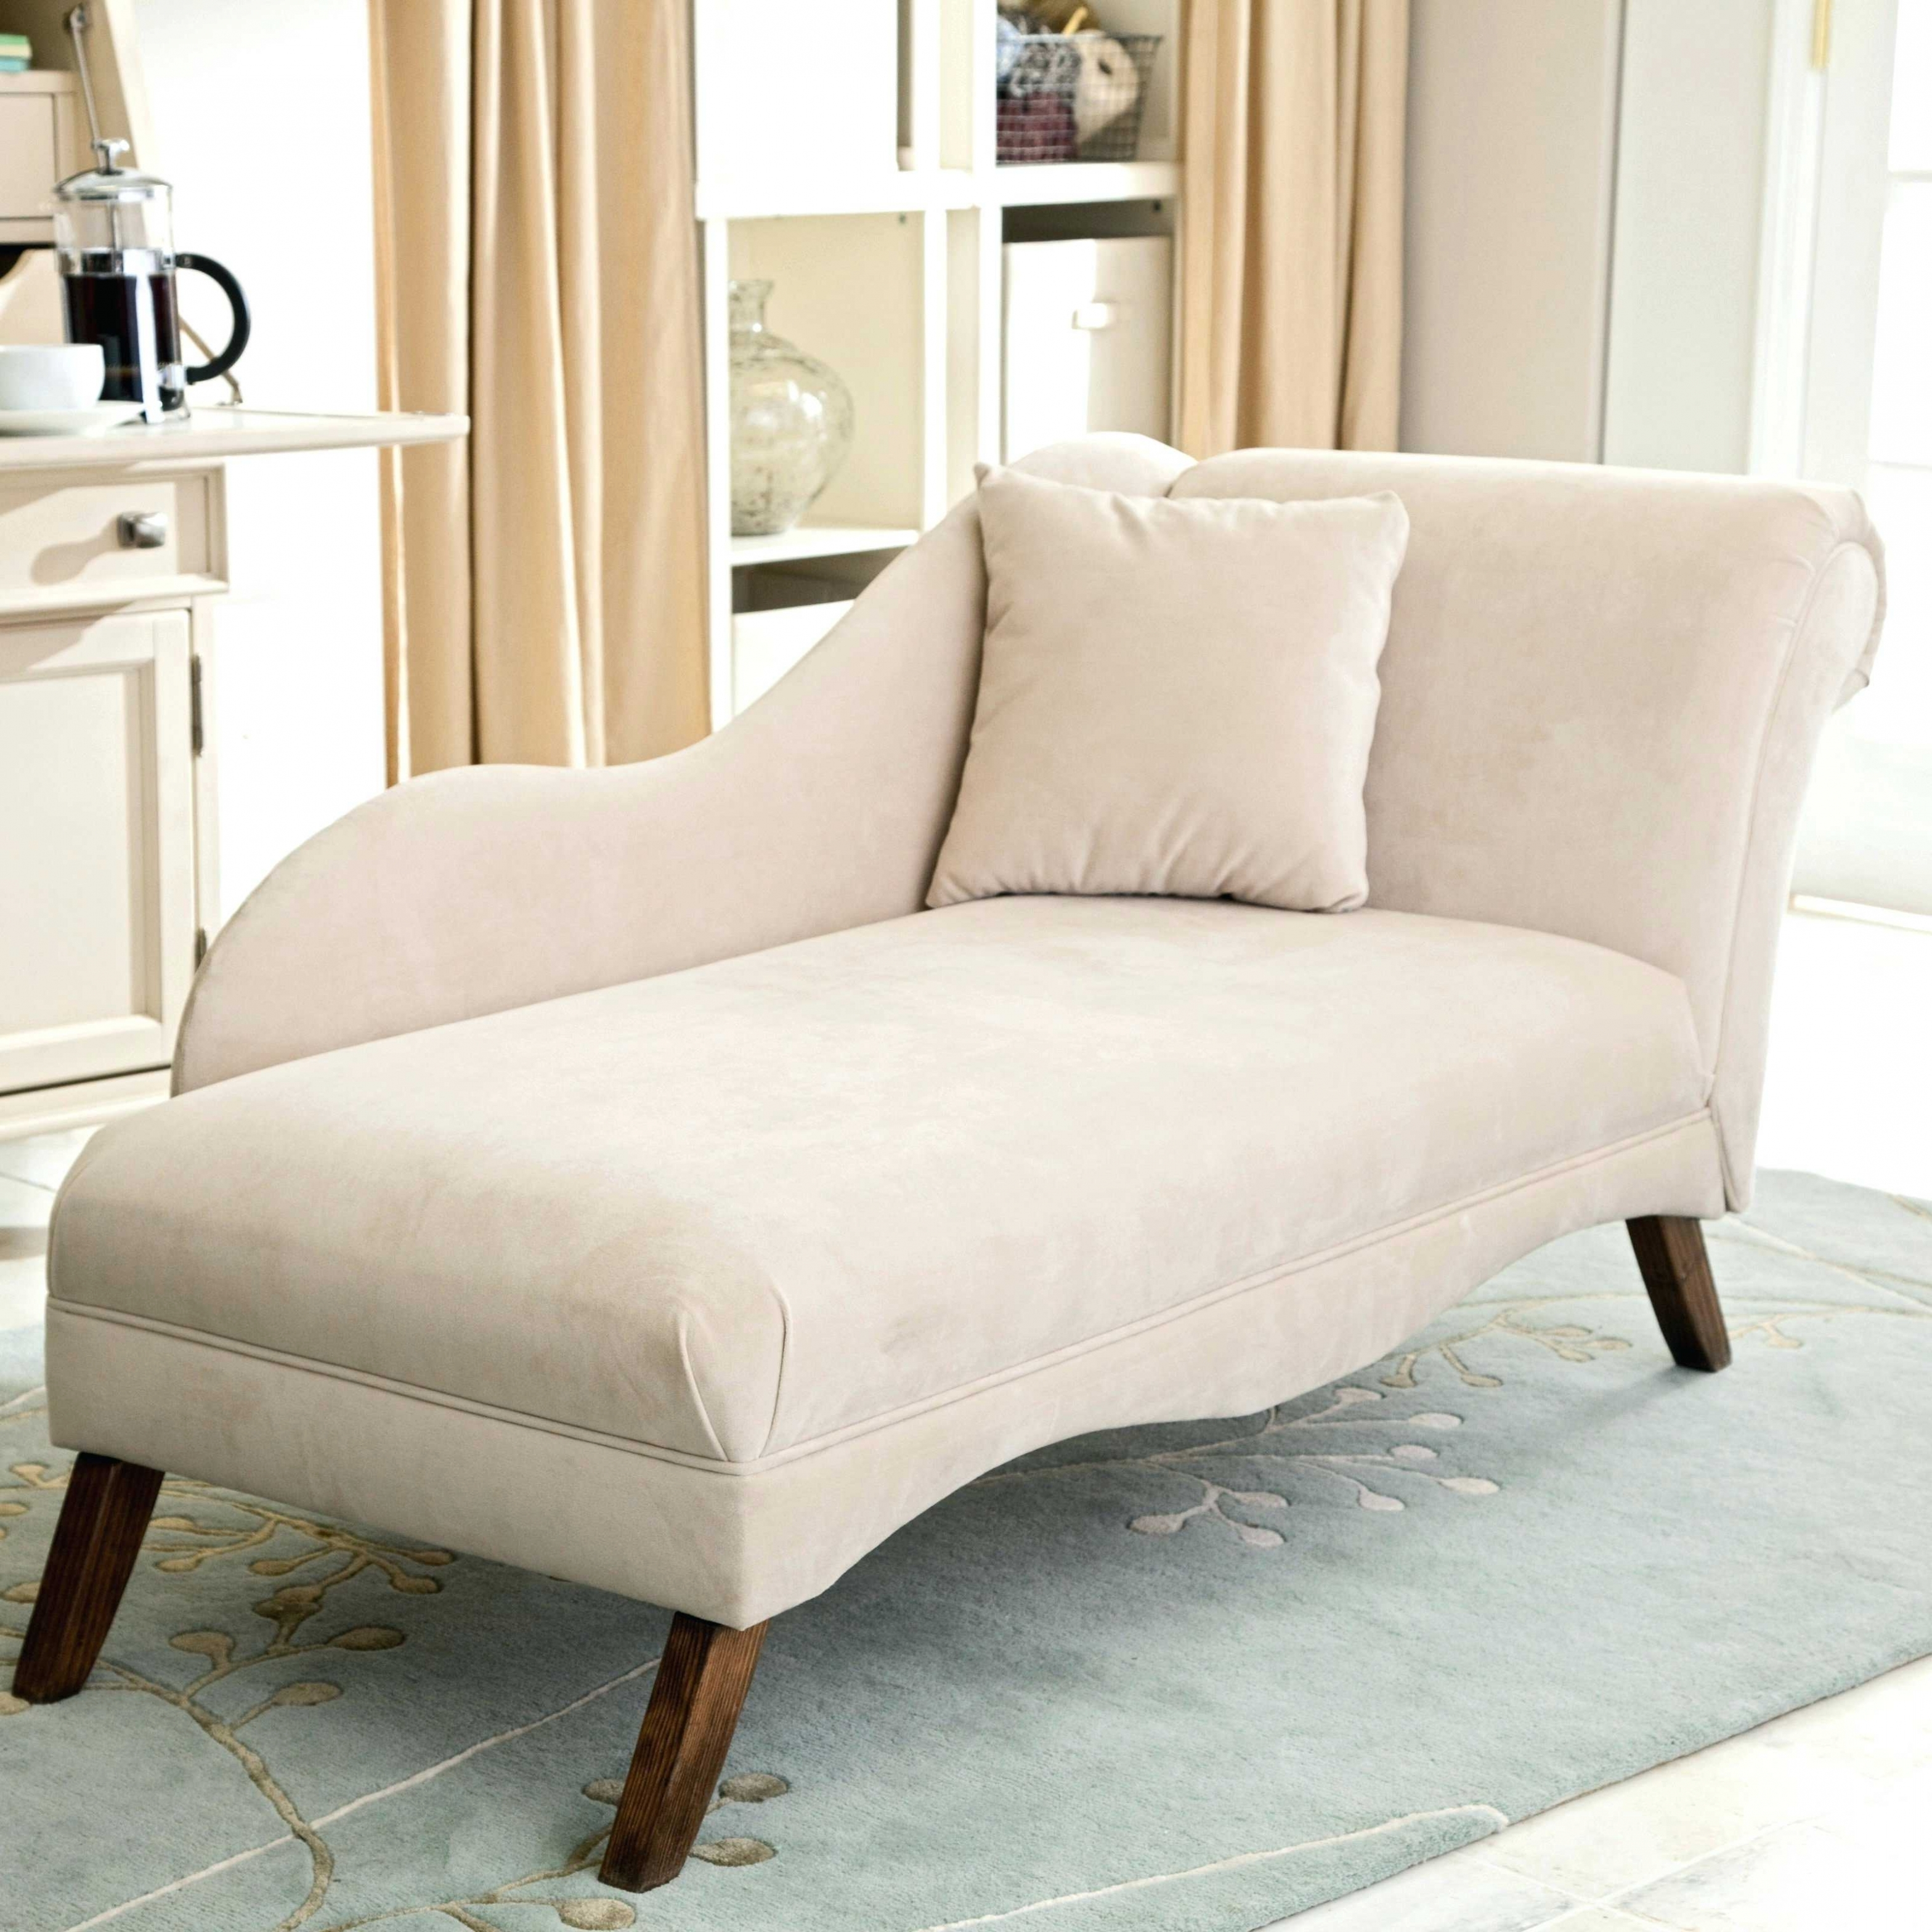 Home Decor: Small Chaise Lounge Chairs For Bedroom French Style Regarding Latest Narrow Chaise Lounge Chairs (View 4 of 15)